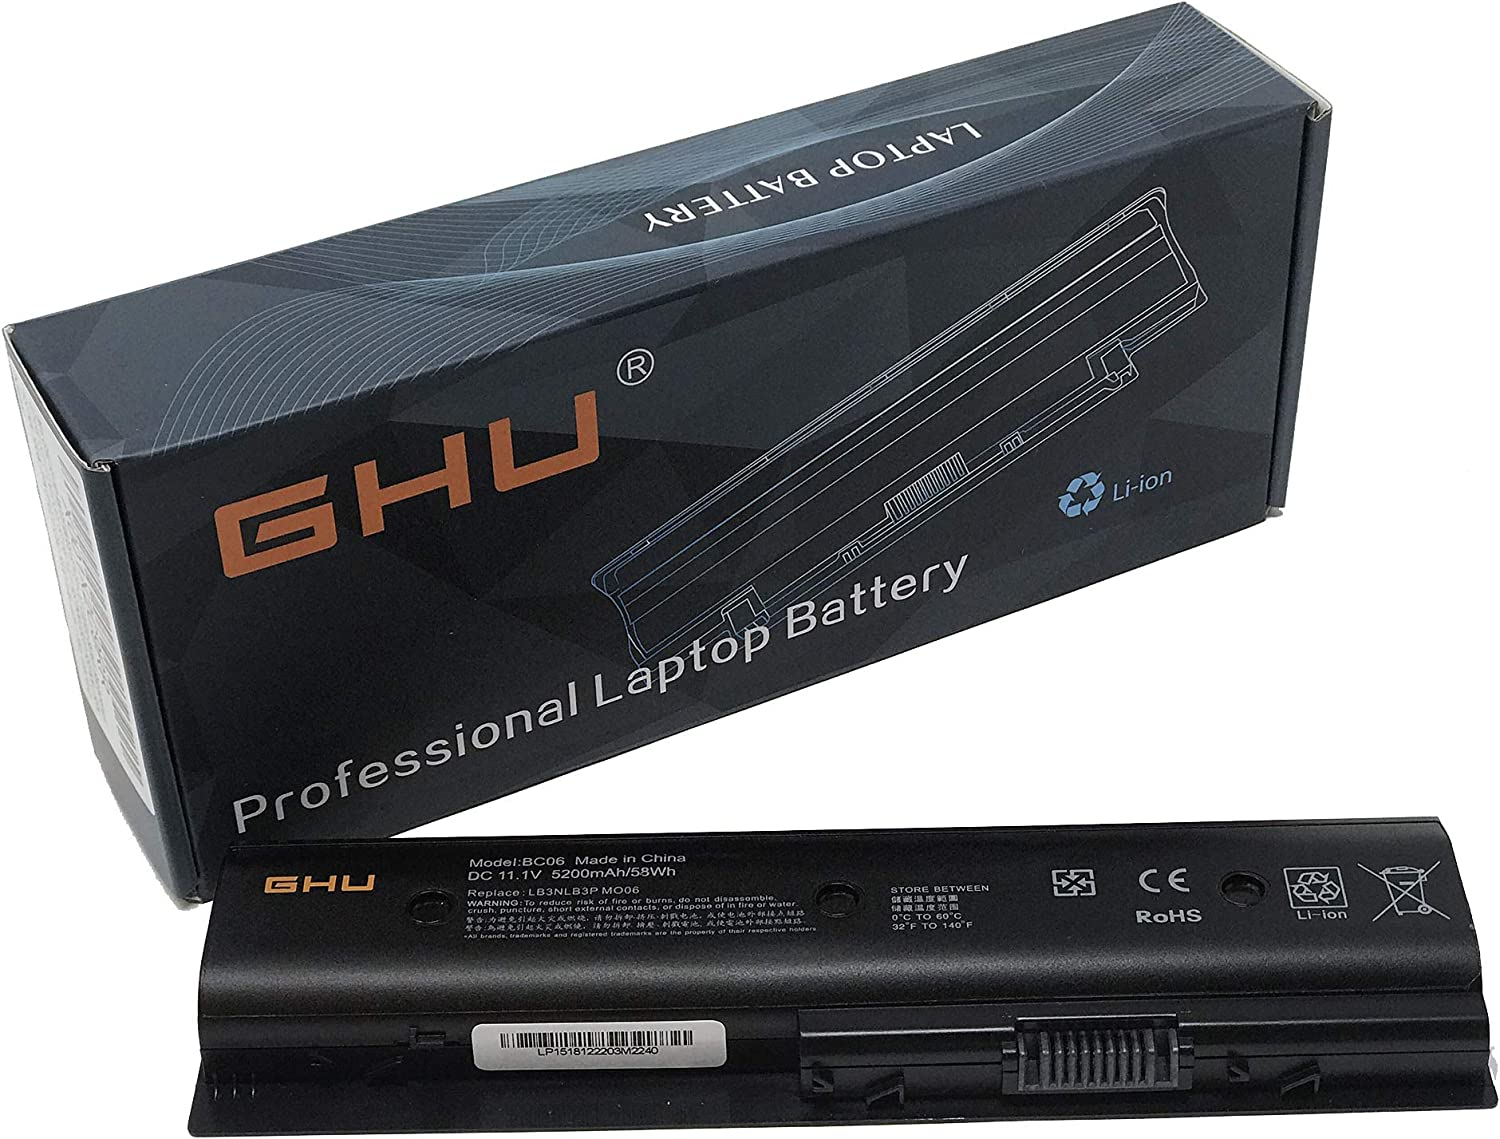 New GHU MO06 Battery Replacement for 671731-001 HSTNN-LB3N HSTNN-LB3P Part # 671567-421 HSTNN-LB3P TPN-P102 MO06 MO09 H2L55AA TPN-W106 11.1v 58 WH Compatible with HP Envy Notebook